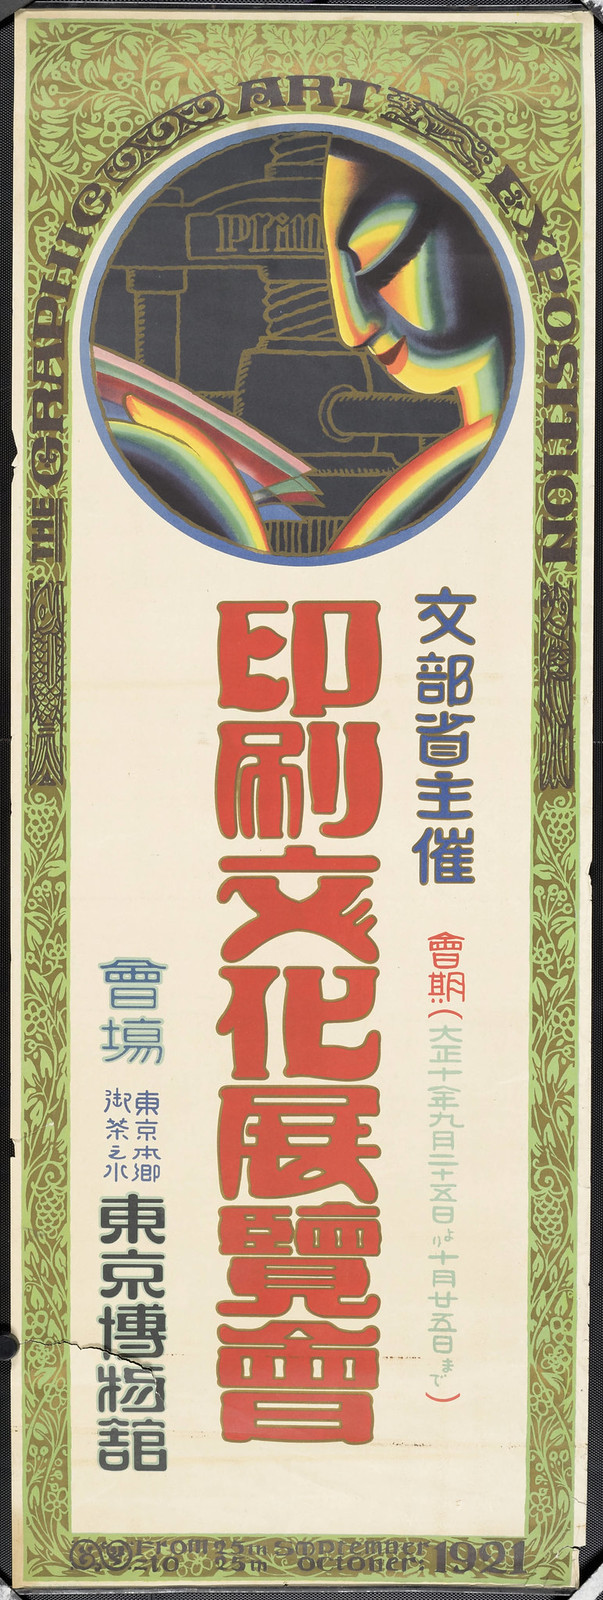 Japanese poster for graphic art exhibition 1920s - abstract face and typography